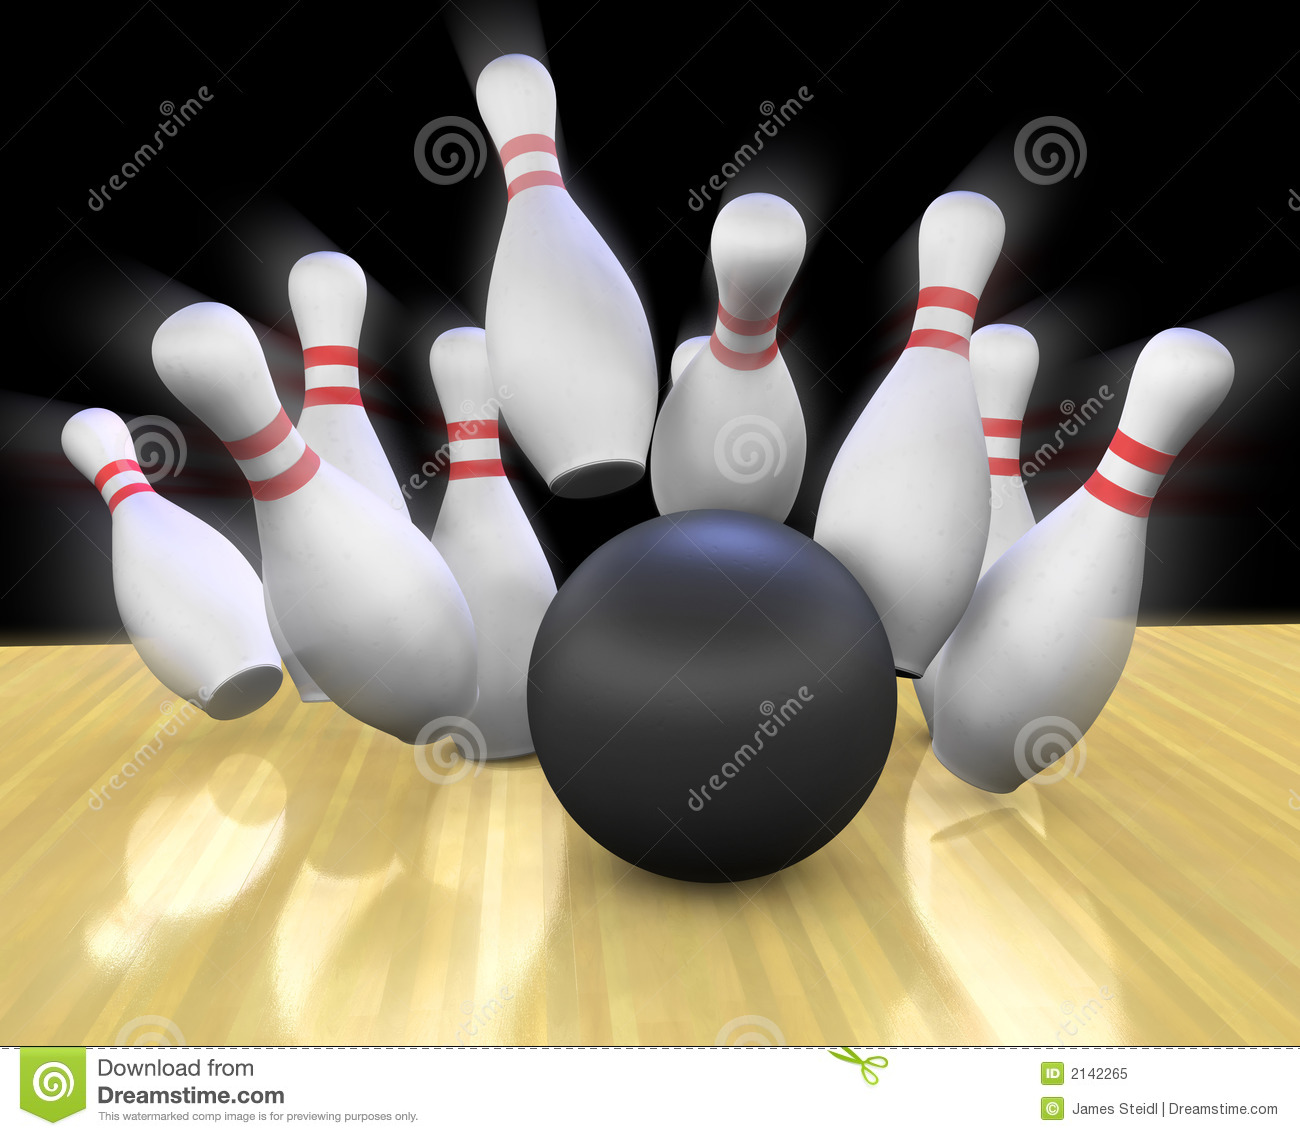 Bowling balls and pins pictures Coin Operated Bowling Alley - m